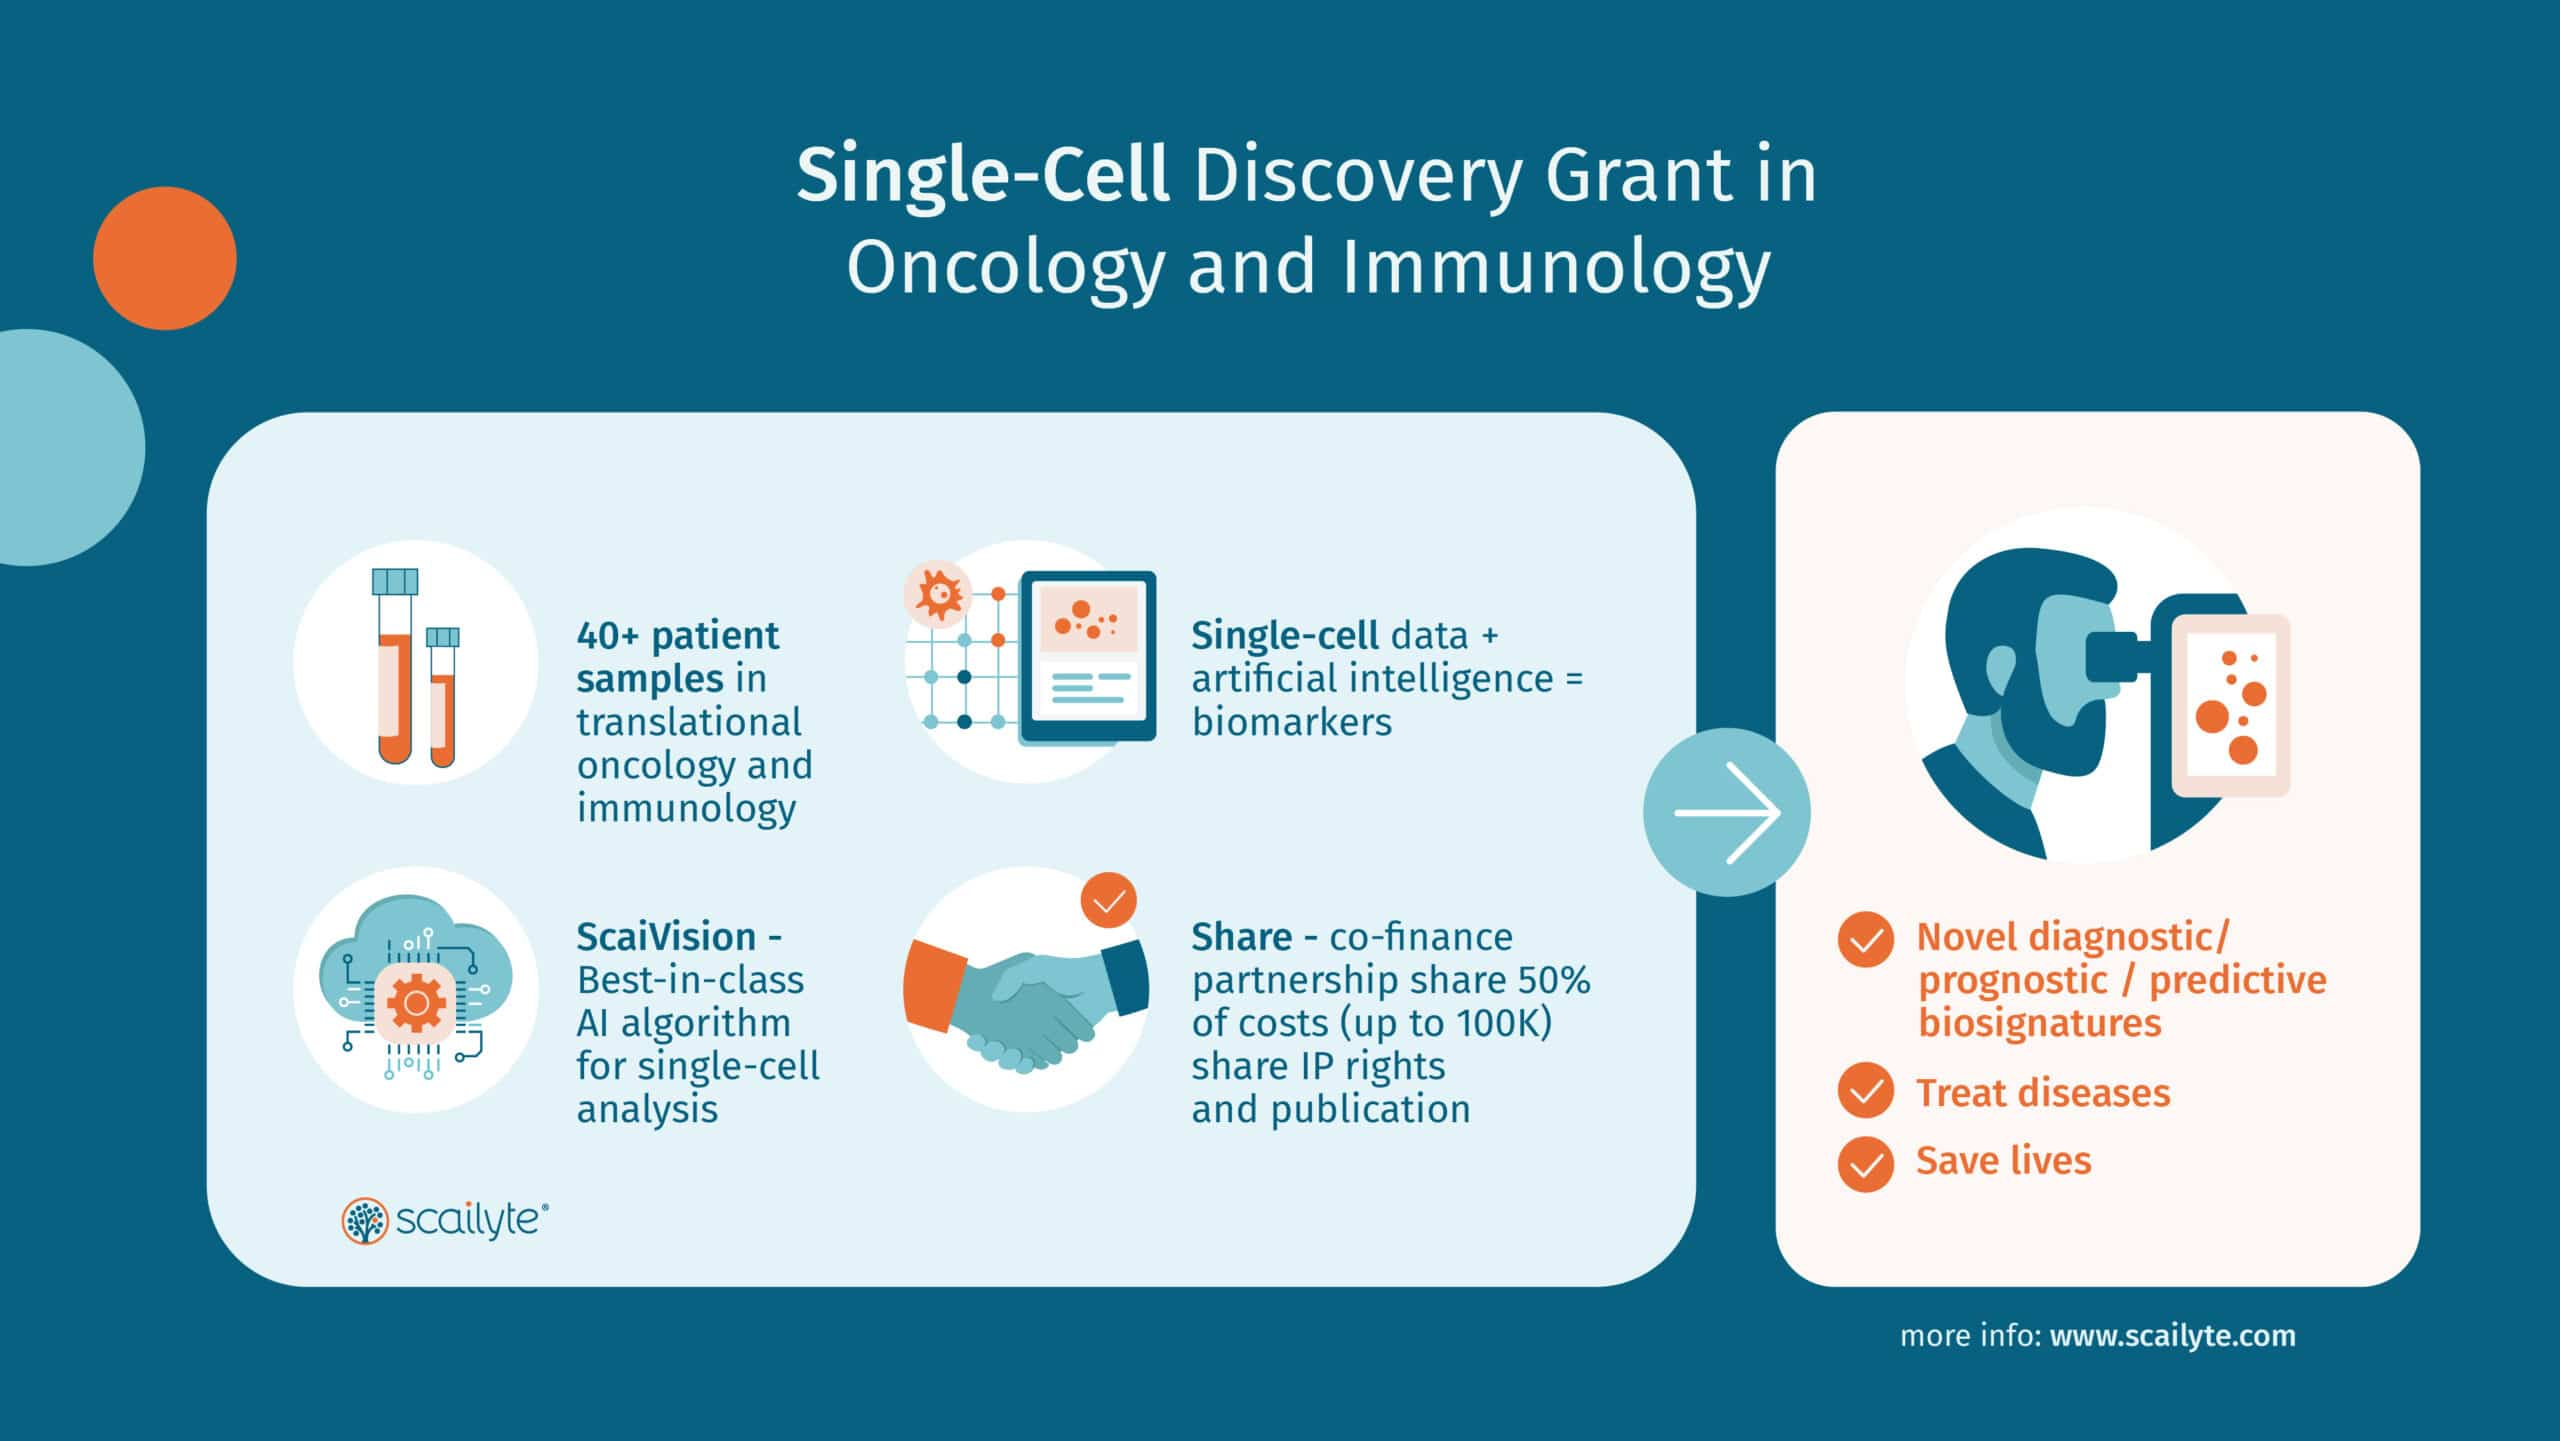 Single-Cell Discovery Grant in Oncology and Immunology